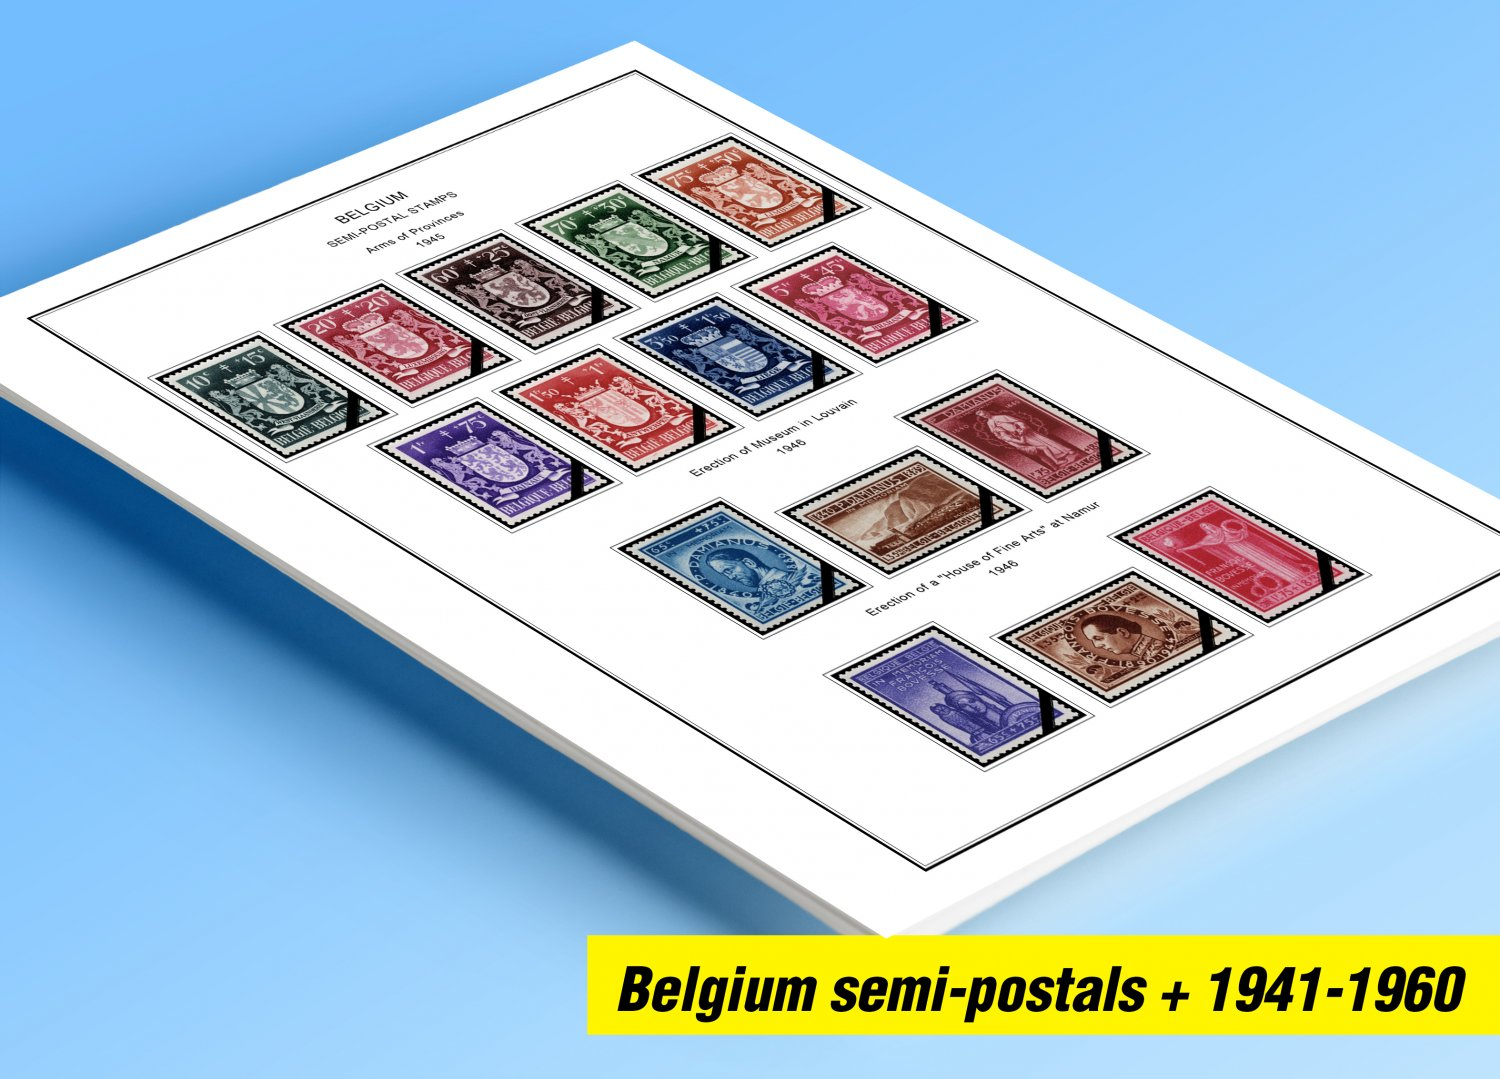 COLOR PRINTED BELGIUM SEMI-POSTALS 1941-1960 STAMP ALBUM PAGES (53 illustrated pages)